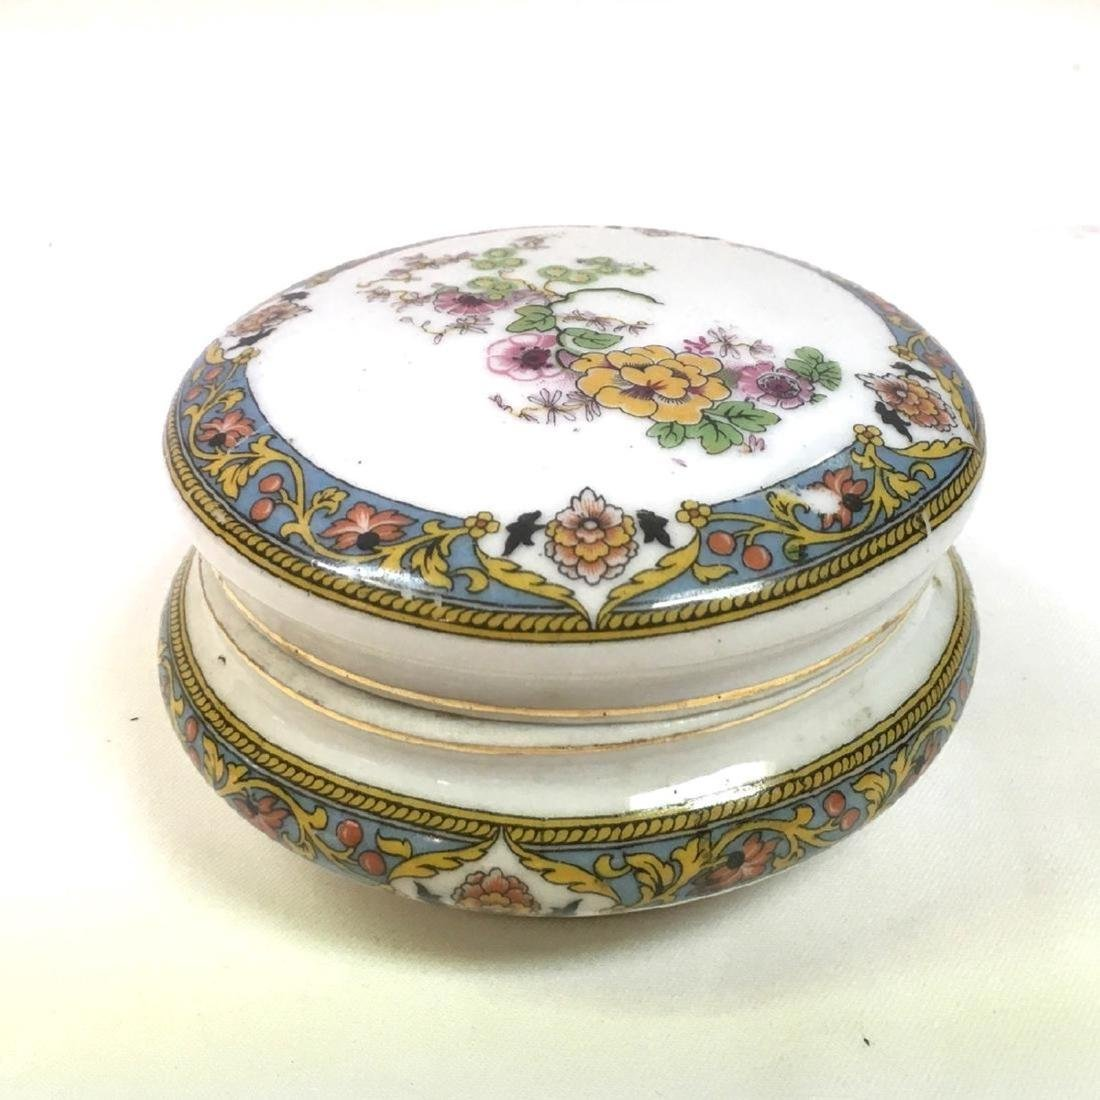 Antique Limoges French Porcelain Trinket Box signed